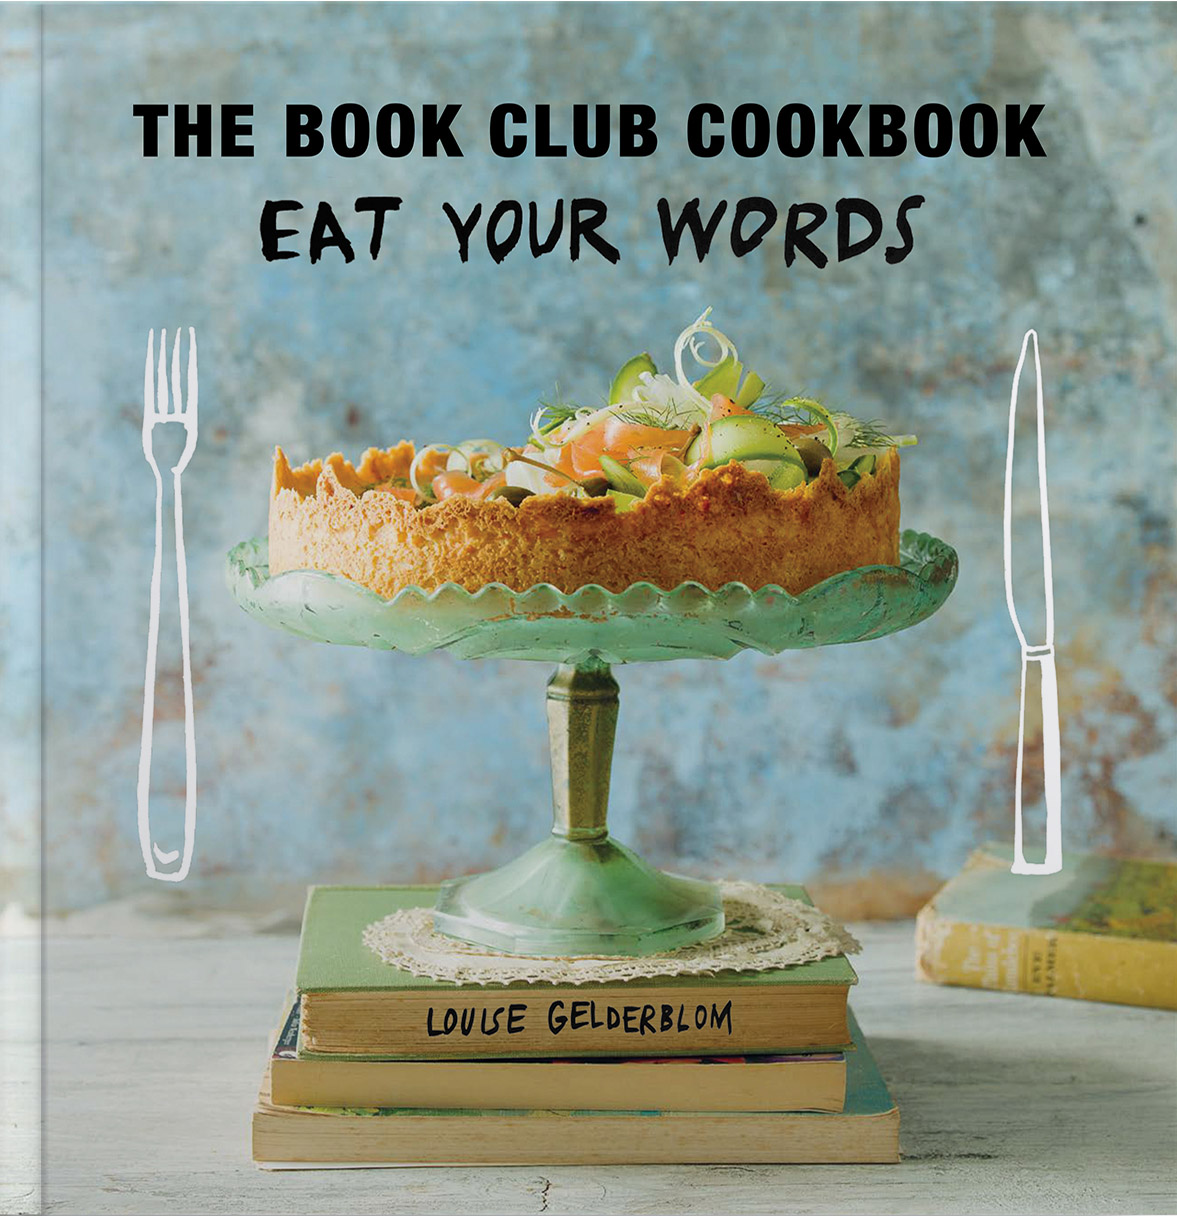 The Book Club Cookbook: Eat Your Words